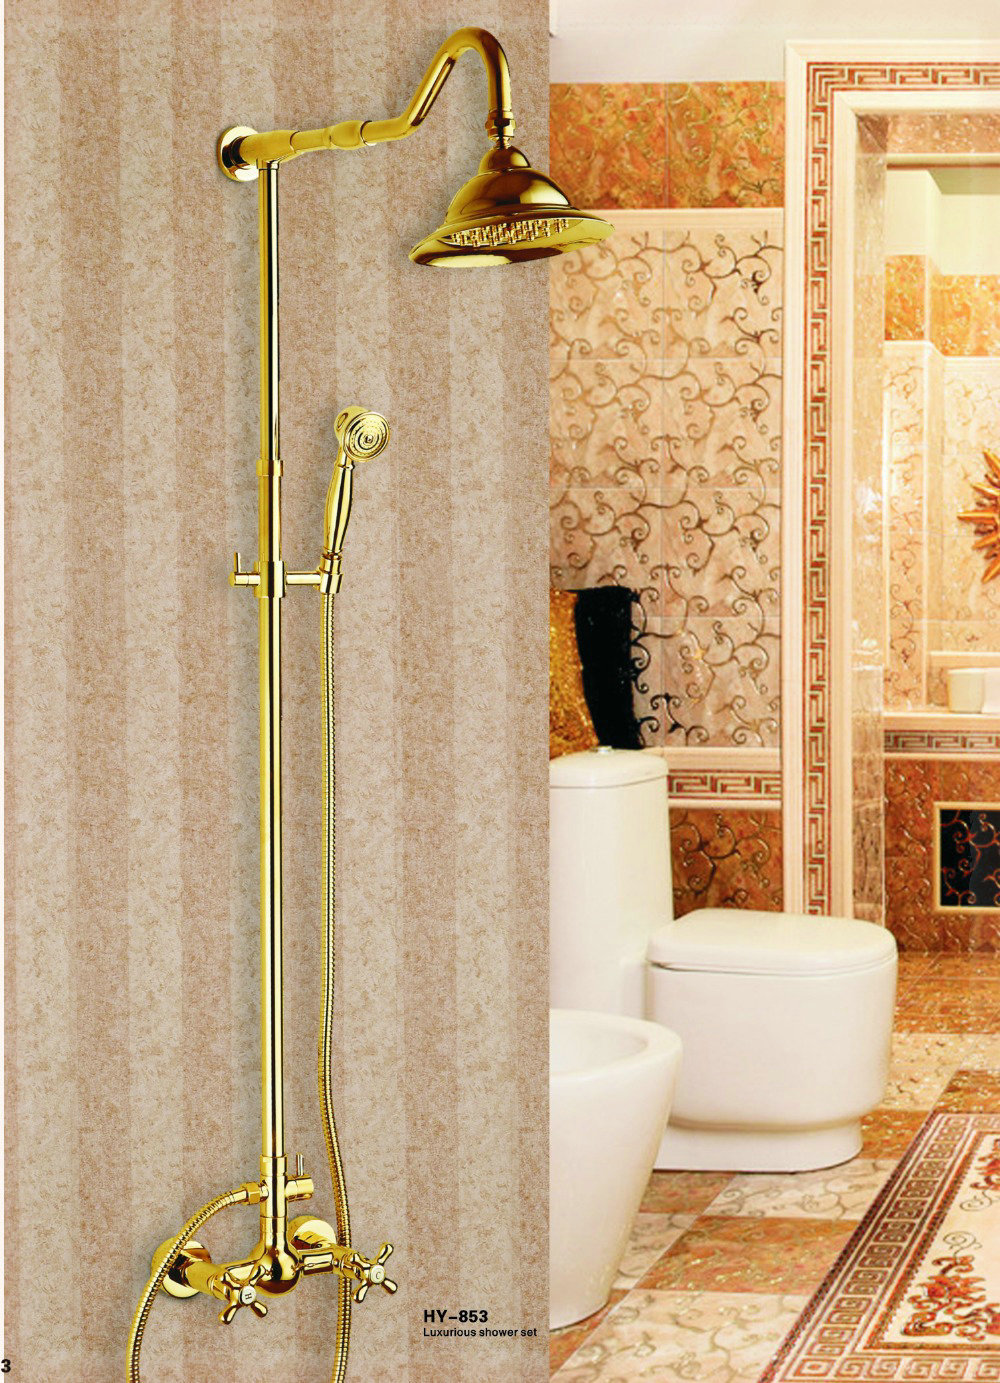 High quality bathroom concealed inwall rainfall square gloden shower set with low price hy-853 wall bathroom faucet(China (Mainland))